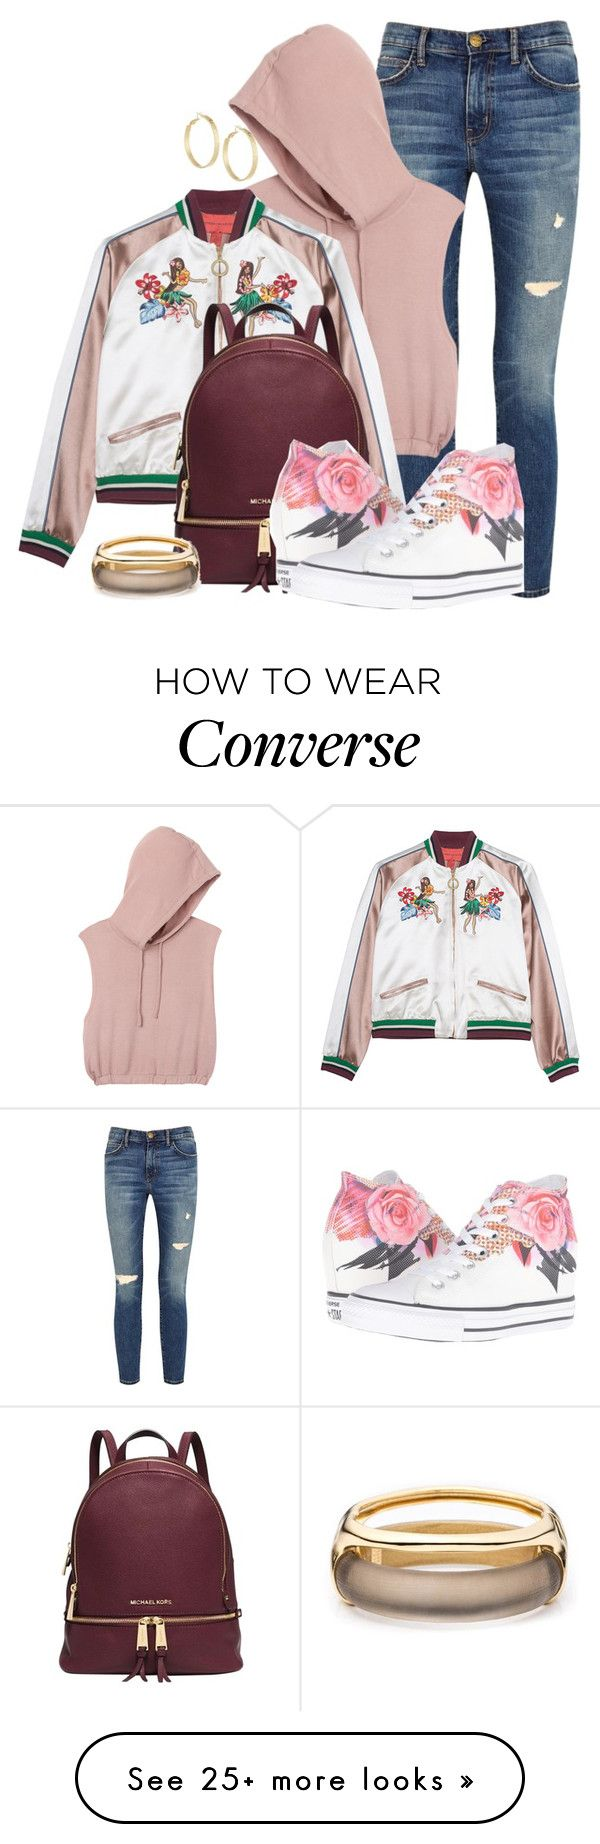 """""""BOMBER by DaNewMeh"""" by thchosn on Polyvore featuring Current/Elliott, RVCA, Michael Kors, Converse, Panacea and Alexis Bittar"""